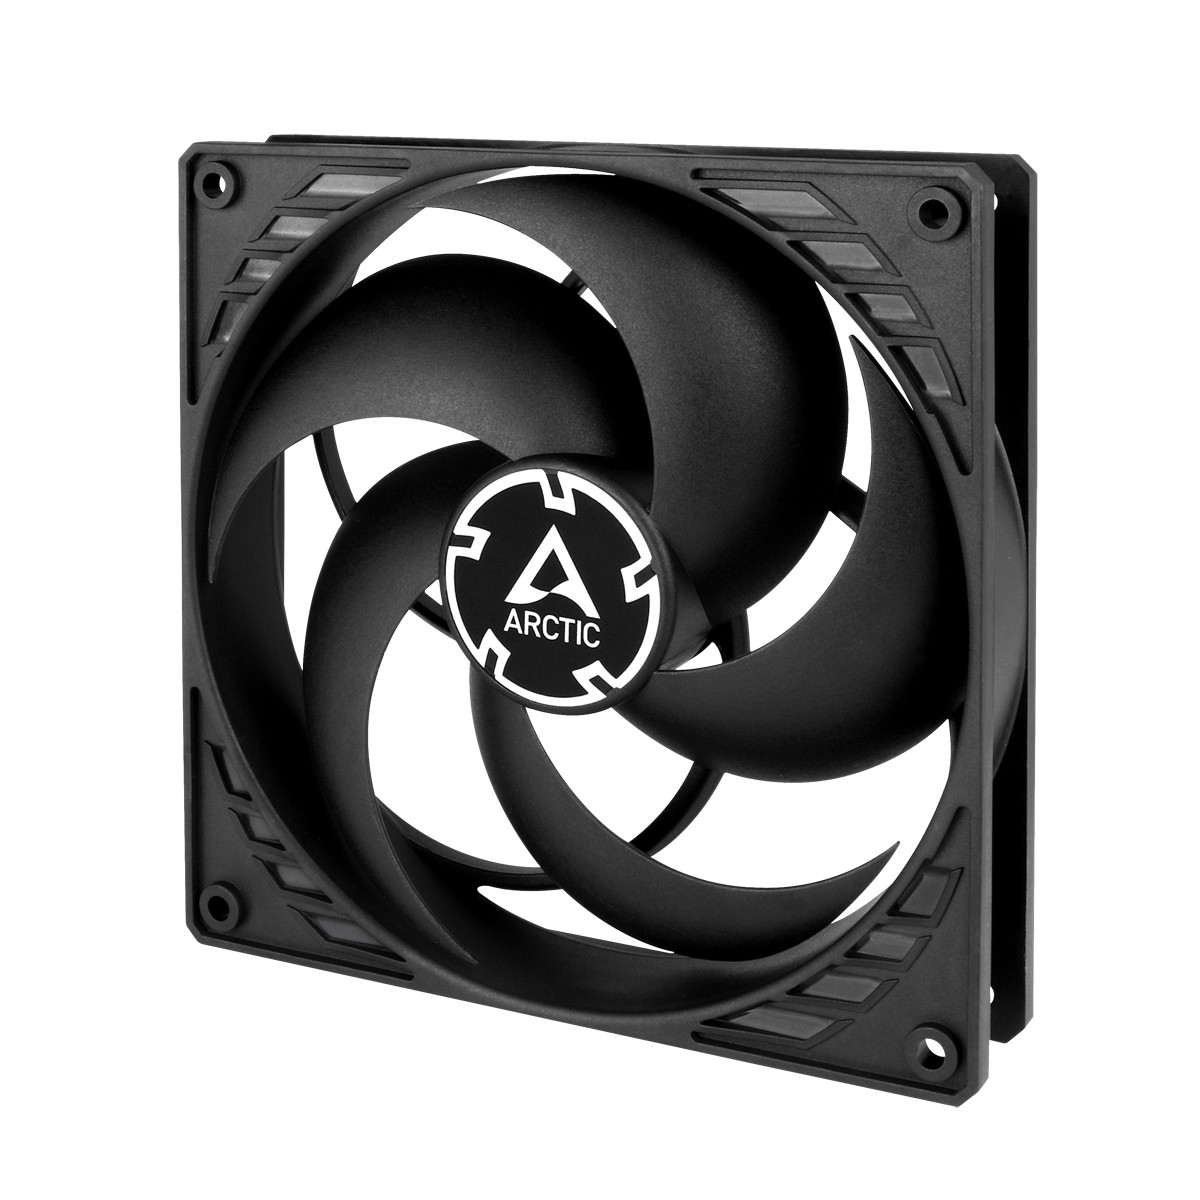 Вентилятор Arctic Cooling P14 PWM (ACFAN00124A) (140mm, 200-1700rpm, 72.8CFM, 23.5dBa, 4-pin)